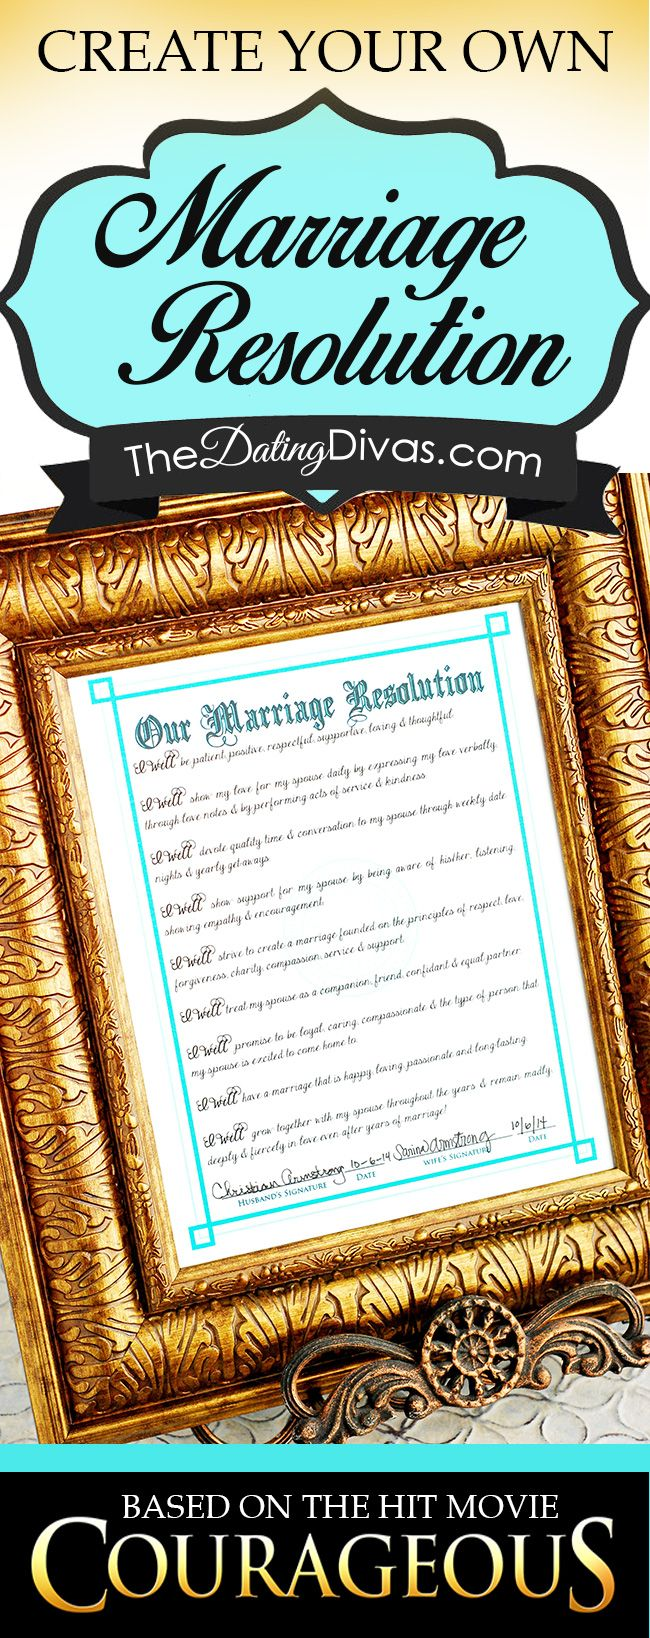 Create your own Marriage Resolution just like in the movie Courageous! I LOVE this idea! www.TheDatingDivas.com